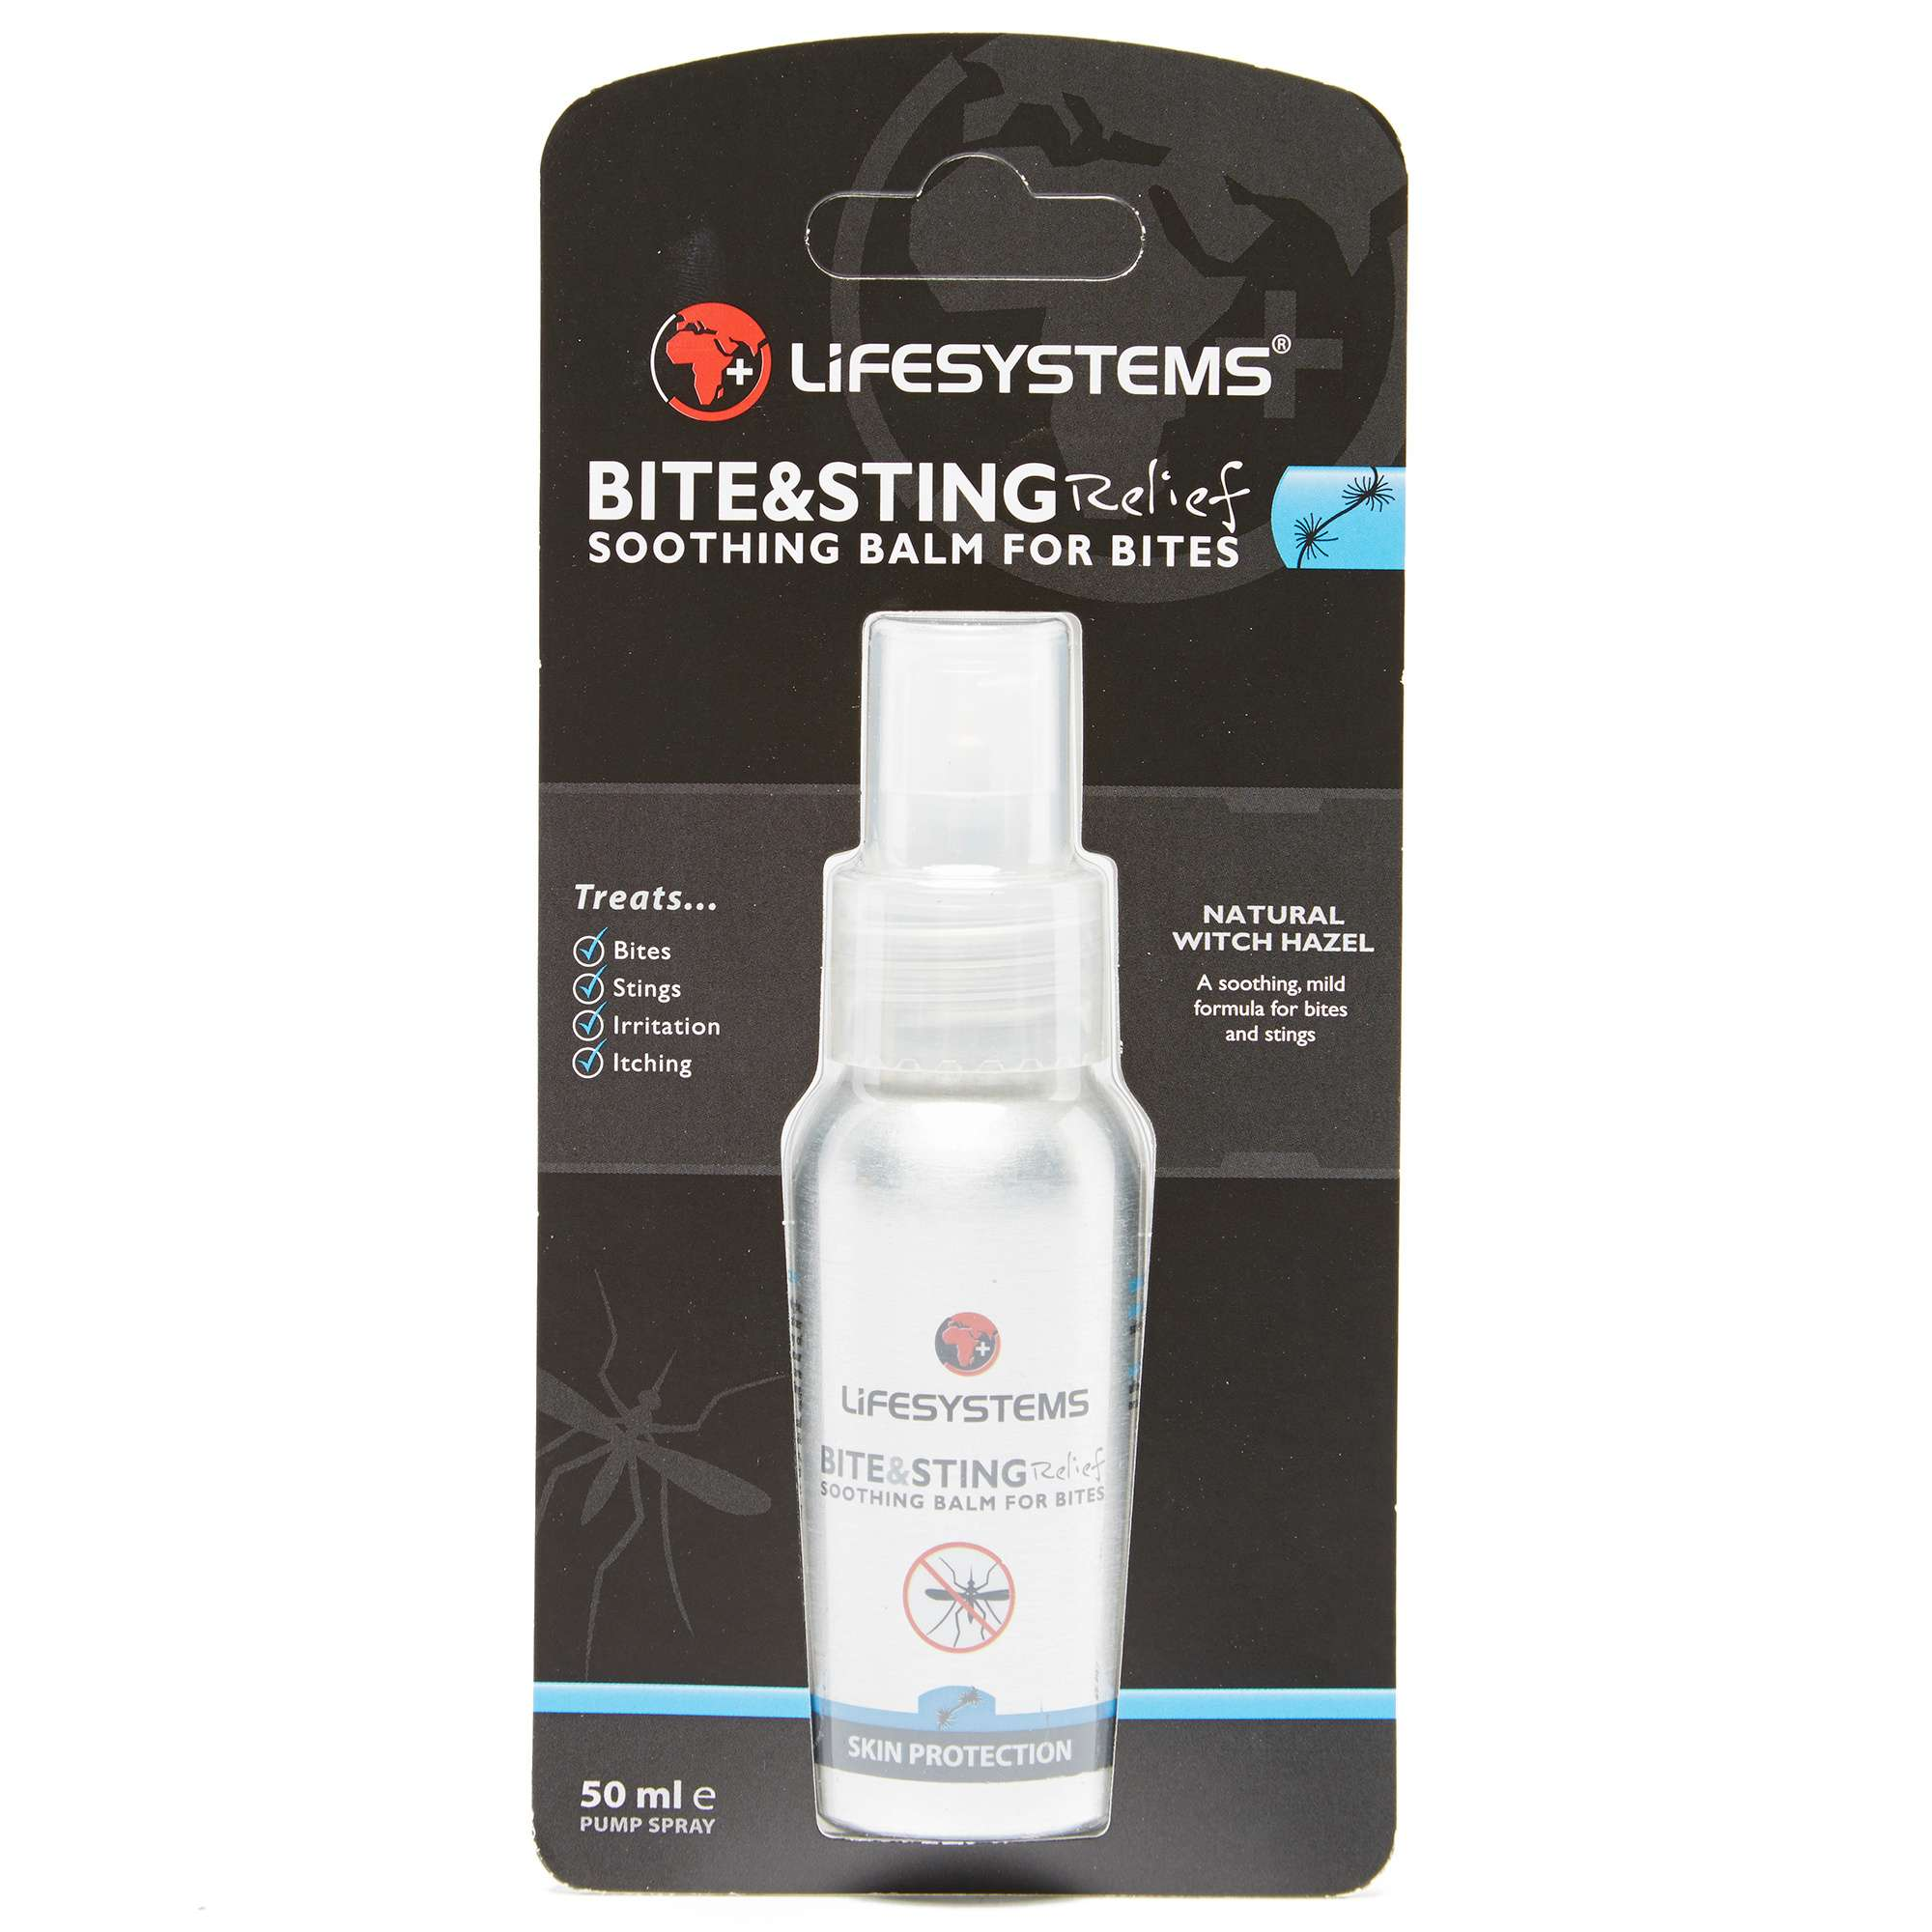 LIFESYSTEMS Bite & Sting Relief Spray